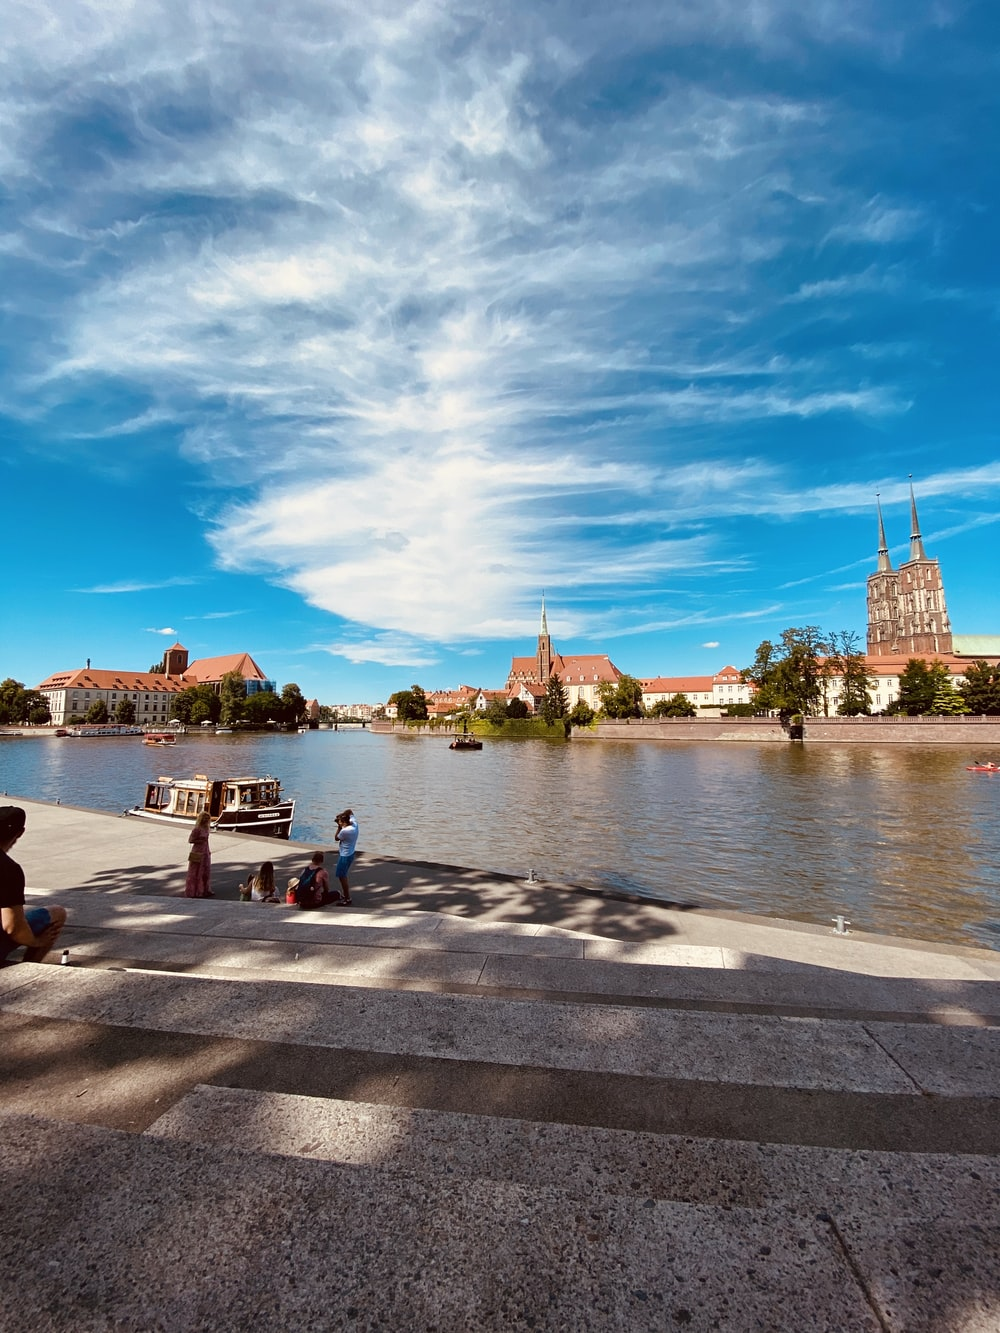 people sitting on concrete bench near body of water during daytime